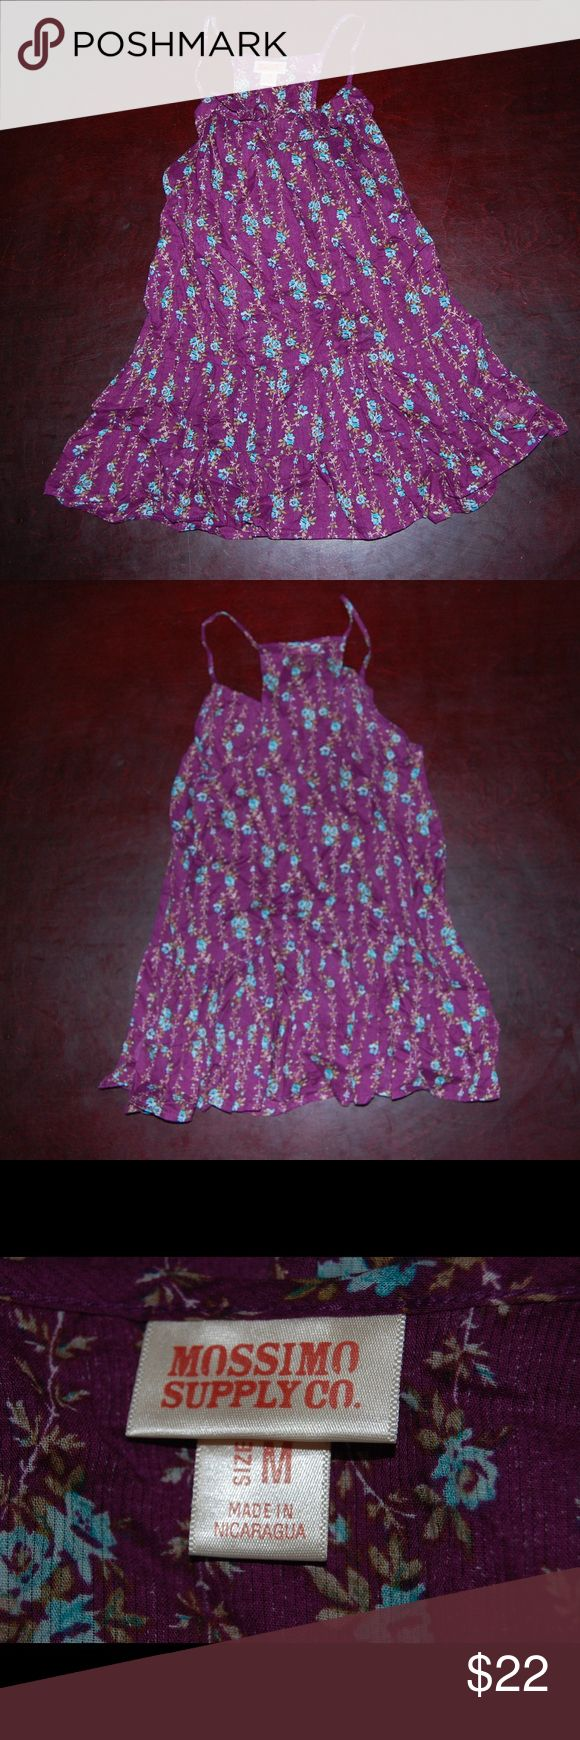 Purple tank top Great condition, rarely worn Tops Tank Tops